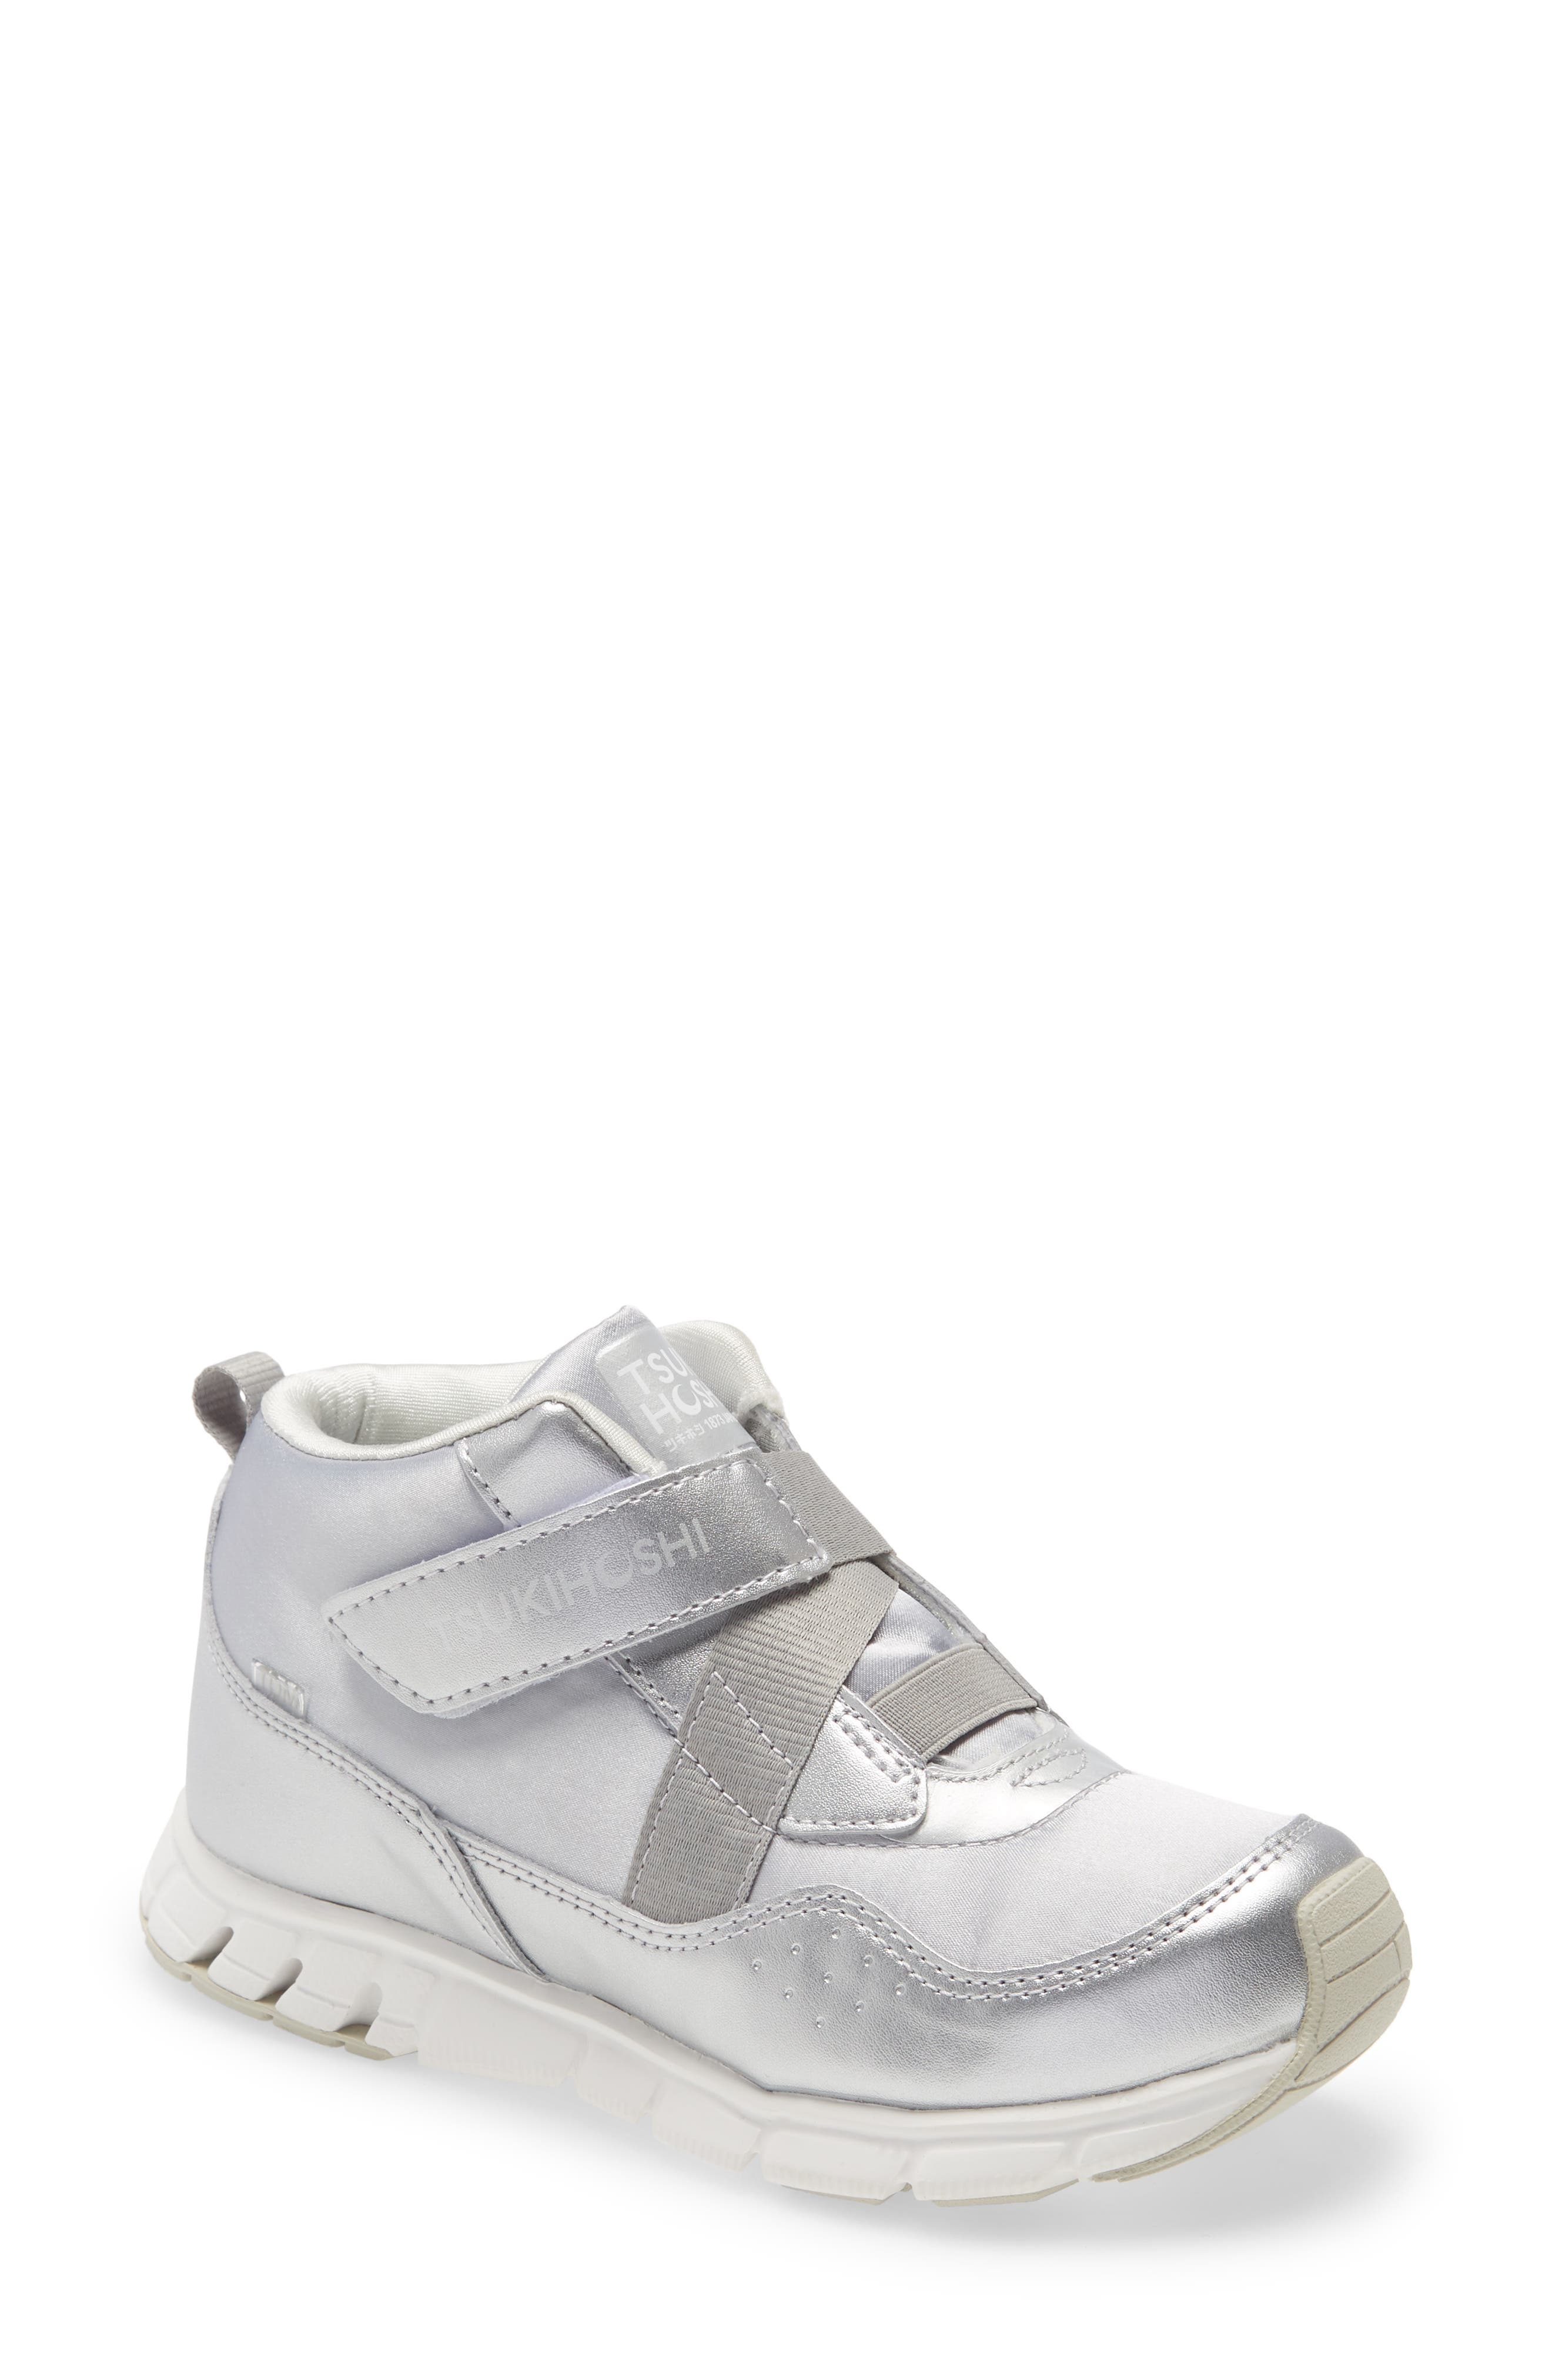 A mid-top sneaker clad in shimmering metallic is both waterproof and washable, making it perfect for everyday adventures. Style Name: Tsukihoshi Toyko Metallic Waterproof Sneaker (Walker, Toddler, Little Kid & Big Kid). Style Number: 6145450. Available in stores.